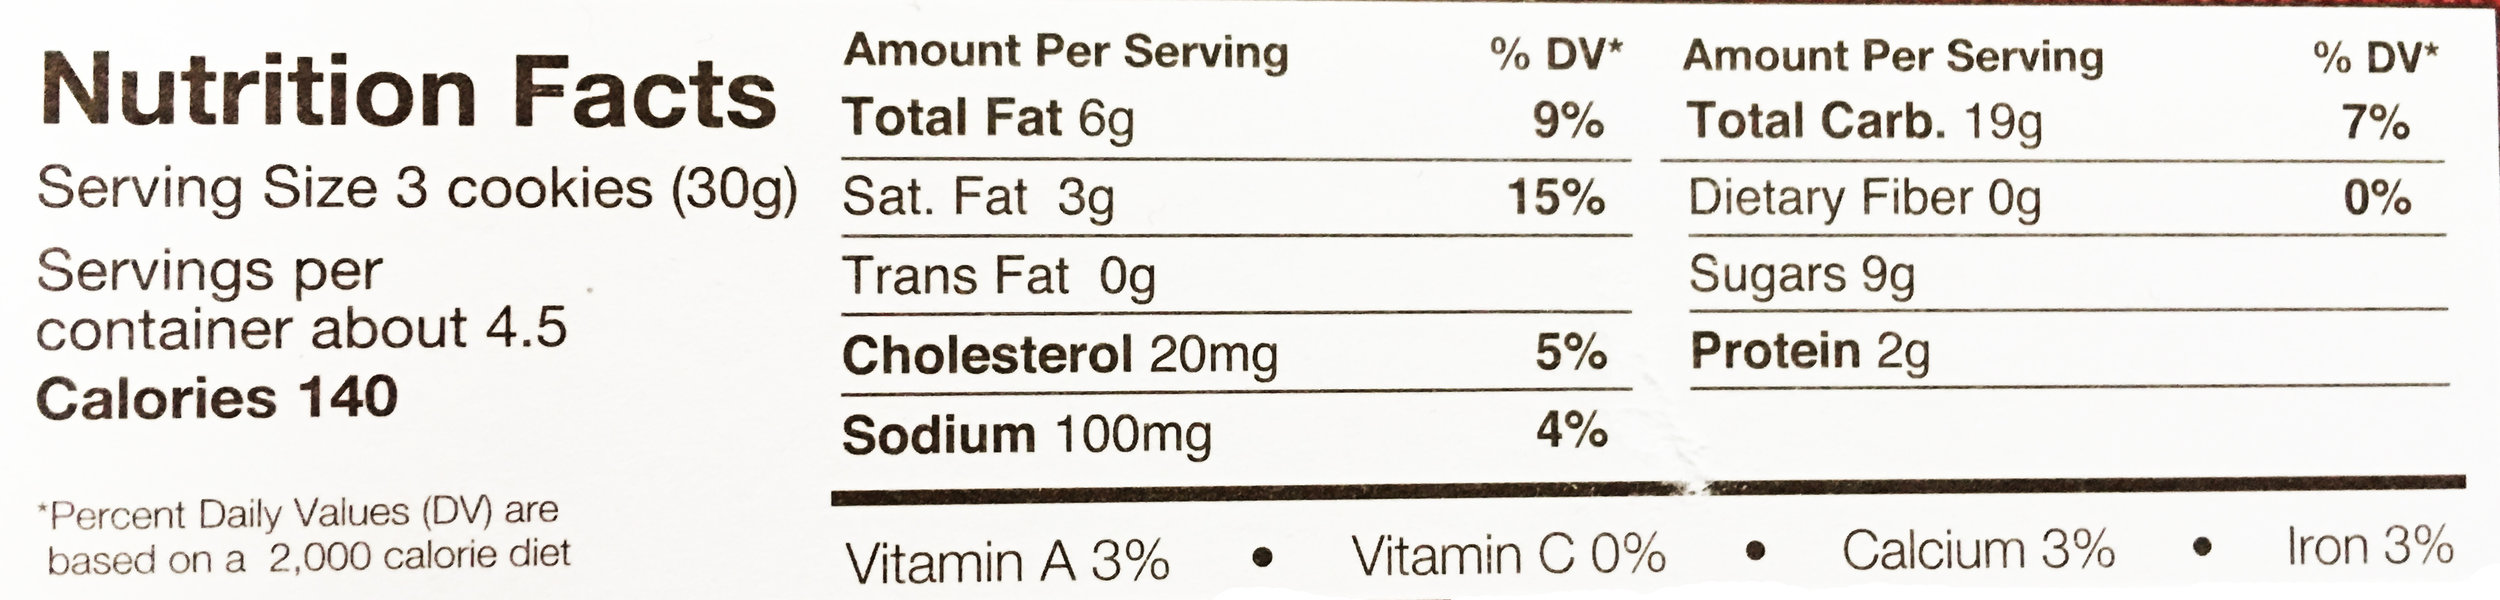 St. Nicks Nutrition Label.JPG